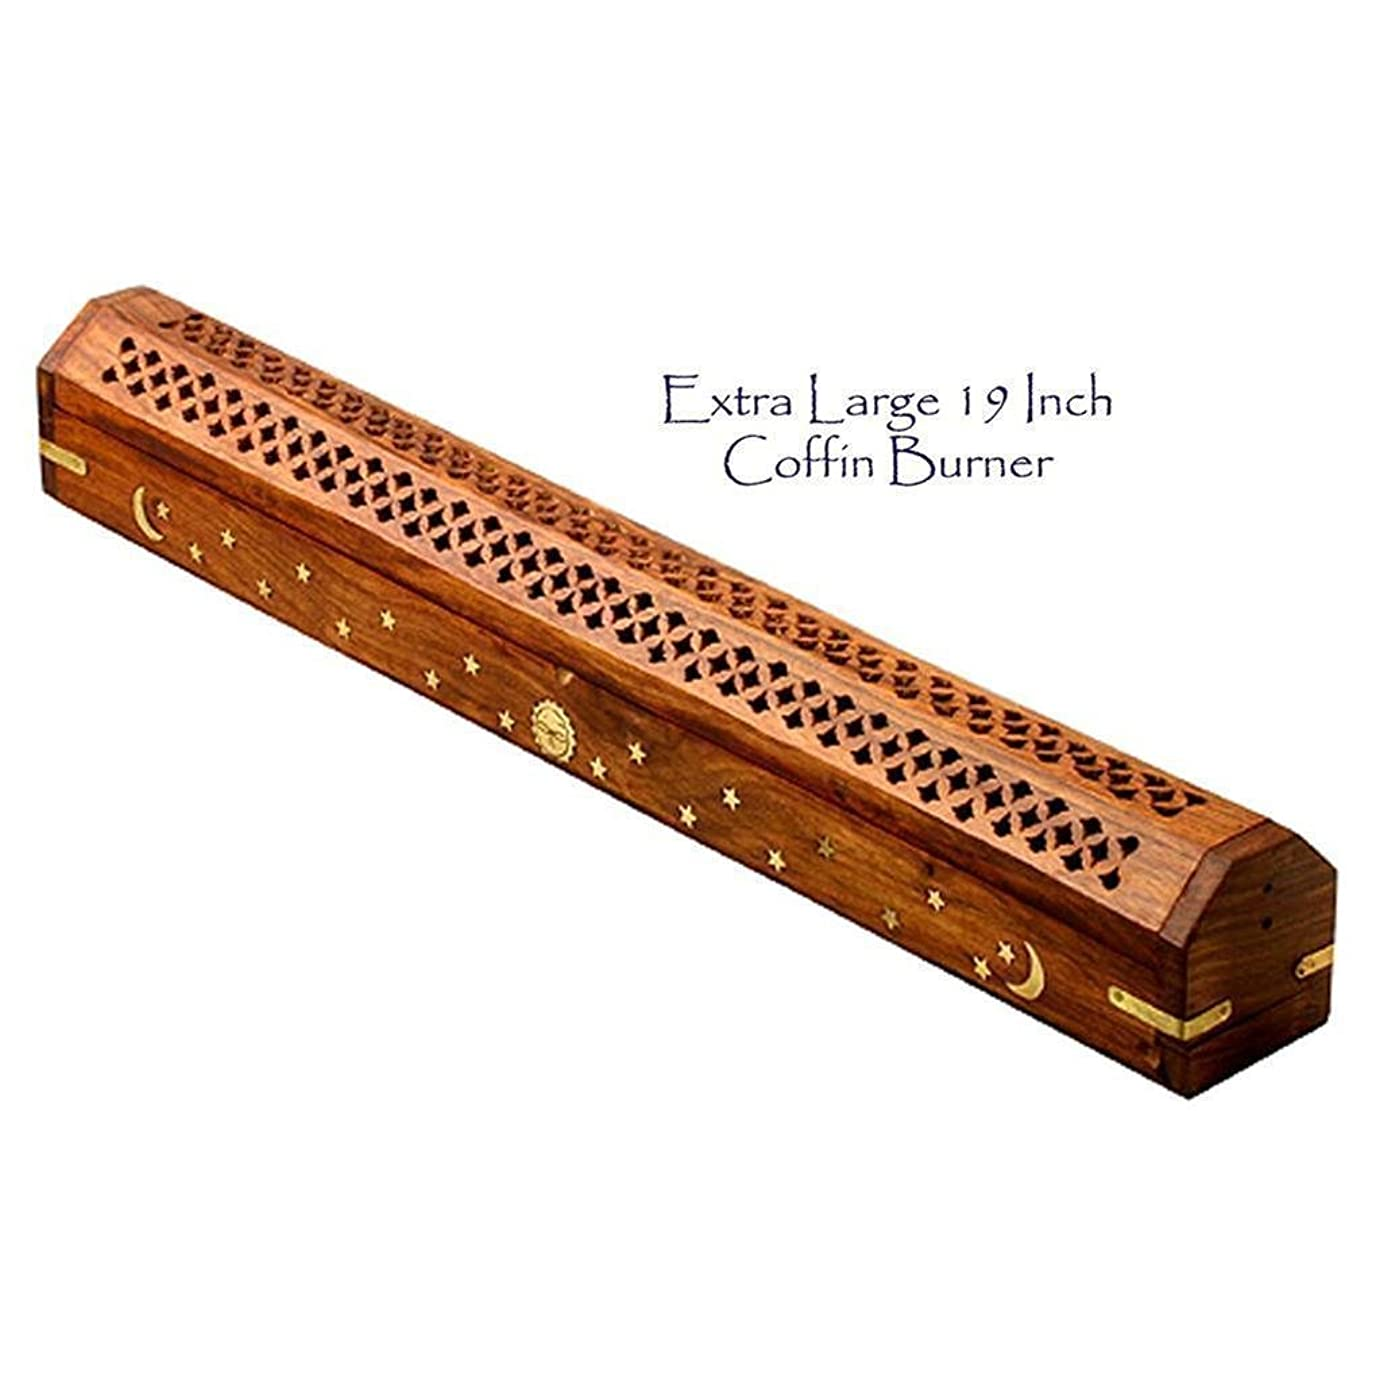 観点十二傾いたThe Parfumerie Incense CoFfIn / Burner Extra Large for 19?in。Incense Sticks?–?真鍮月&星